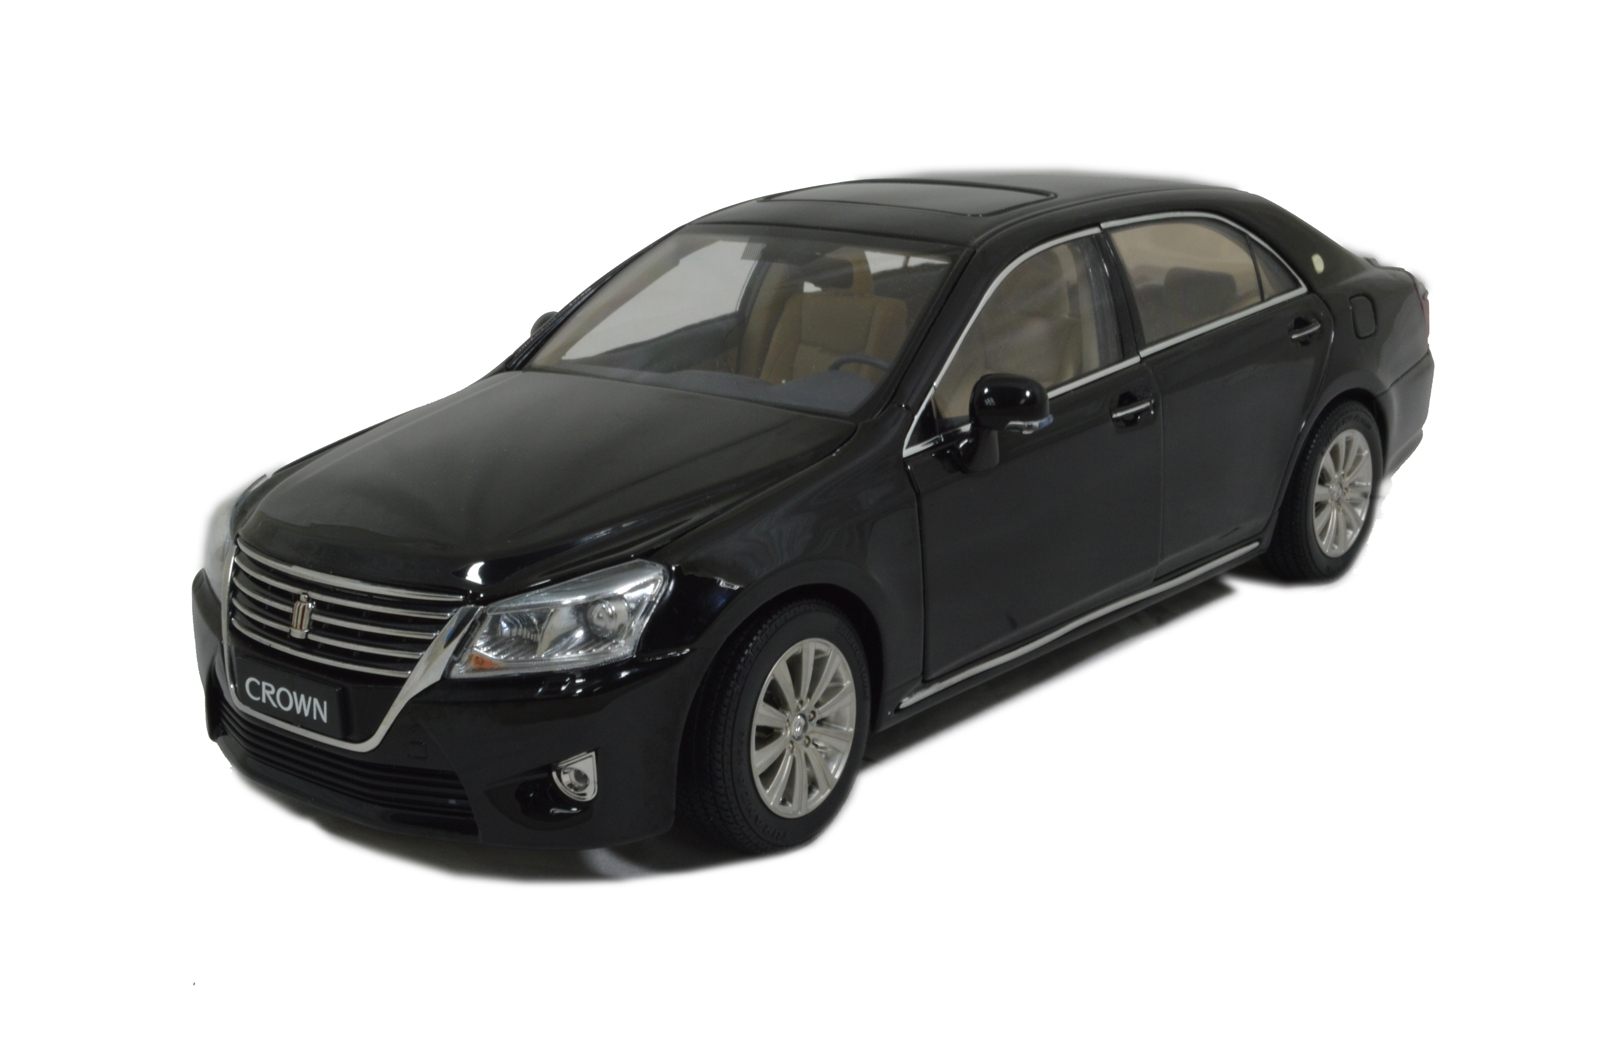 Toyota Crown 2012 diecast model car 1:18 scale model car 3